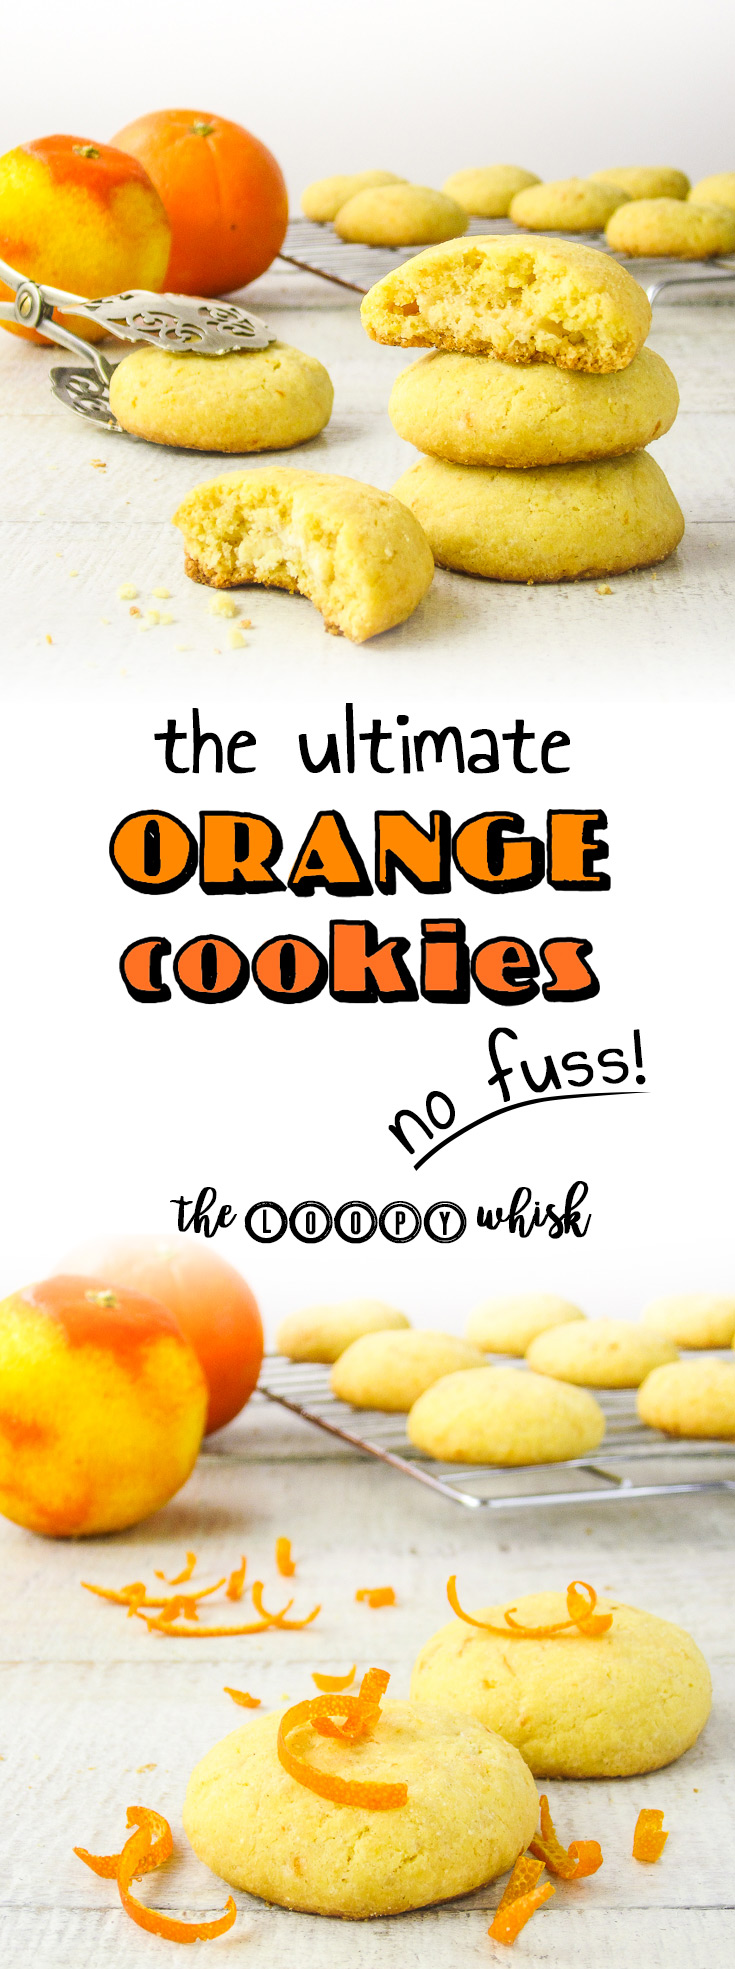 The Ultimate Orange Cookies - Orange juice in the buttery, crumbly cookie form. This no fuss recipe ensures you go from craving warm cookies to stuffing your face with them in under an hour.